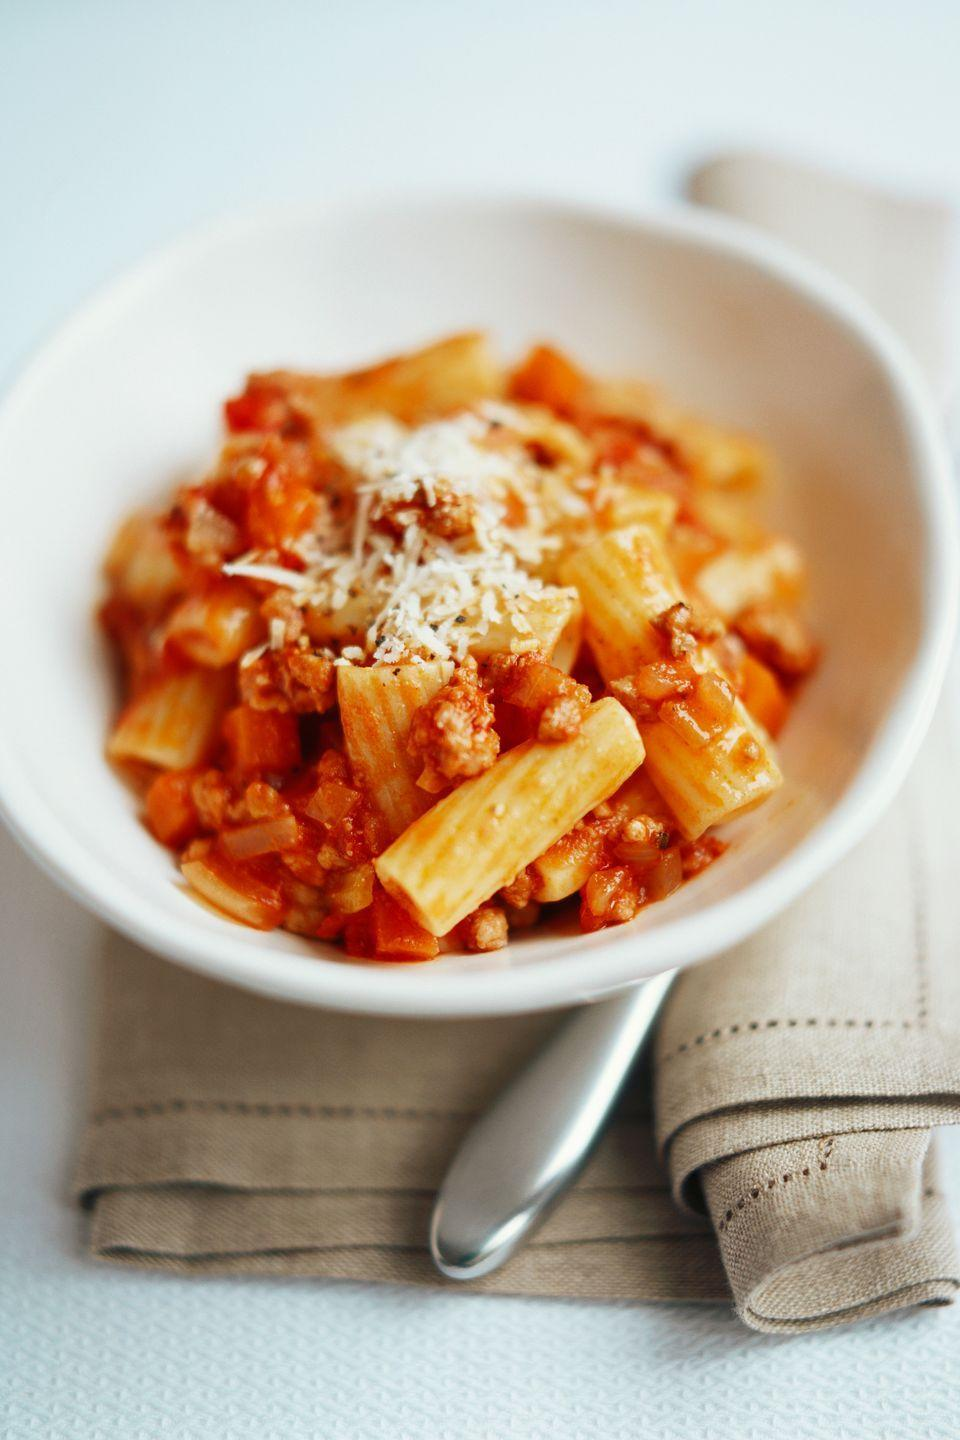 """<p>Baked rigatoni is the ultimate comfort food make-ahead meal. Try this easy freezer trick: Line a casserole dish with foil, leaving an overhang on two sides before adding the prepared pasta and freezing until just firm. Then, use the overhangs to lift the casserole out of the dish so it can stay in the freezer up to two months and simply pop back into the dish when it's time to cook. </p><p><span class=""""redactor-invisible-space""""><em><a href=""""https://www.goodhousekeeping.com/food-recipes/a15150/baked-butternut-squash-rigatoni-recipe-clv0213/"""" rel=""""nofollow noopener"""" target=""""_blank"""" data-ylk=""""slk:Get the recipe for Baked Butternut-Squash Rigatoni »"""" class=""""link rapid-noclick-resp"""">Get the recipe for Baked Butternut-Squash Rigatoni »</a></em></span></p><p><span class=""""redactor-invisible-space""""><strong>RELATED: </strong><a href=""""https://www.goodhousekeeping.com/food-recipes/easy/g1440/casserole-recipes/"""" rel=""""nofollow noopener"""" target=""""_blank"""" data-ylk=""""slk:17 Best Casserole Recipes for the Ultimate Comfort Food"""" class=""""link rapid-noclick-resp"""">17 Best Casserole Recipes for the Ultimate Comfort Food</a><strong><br></strong></span></p>"""